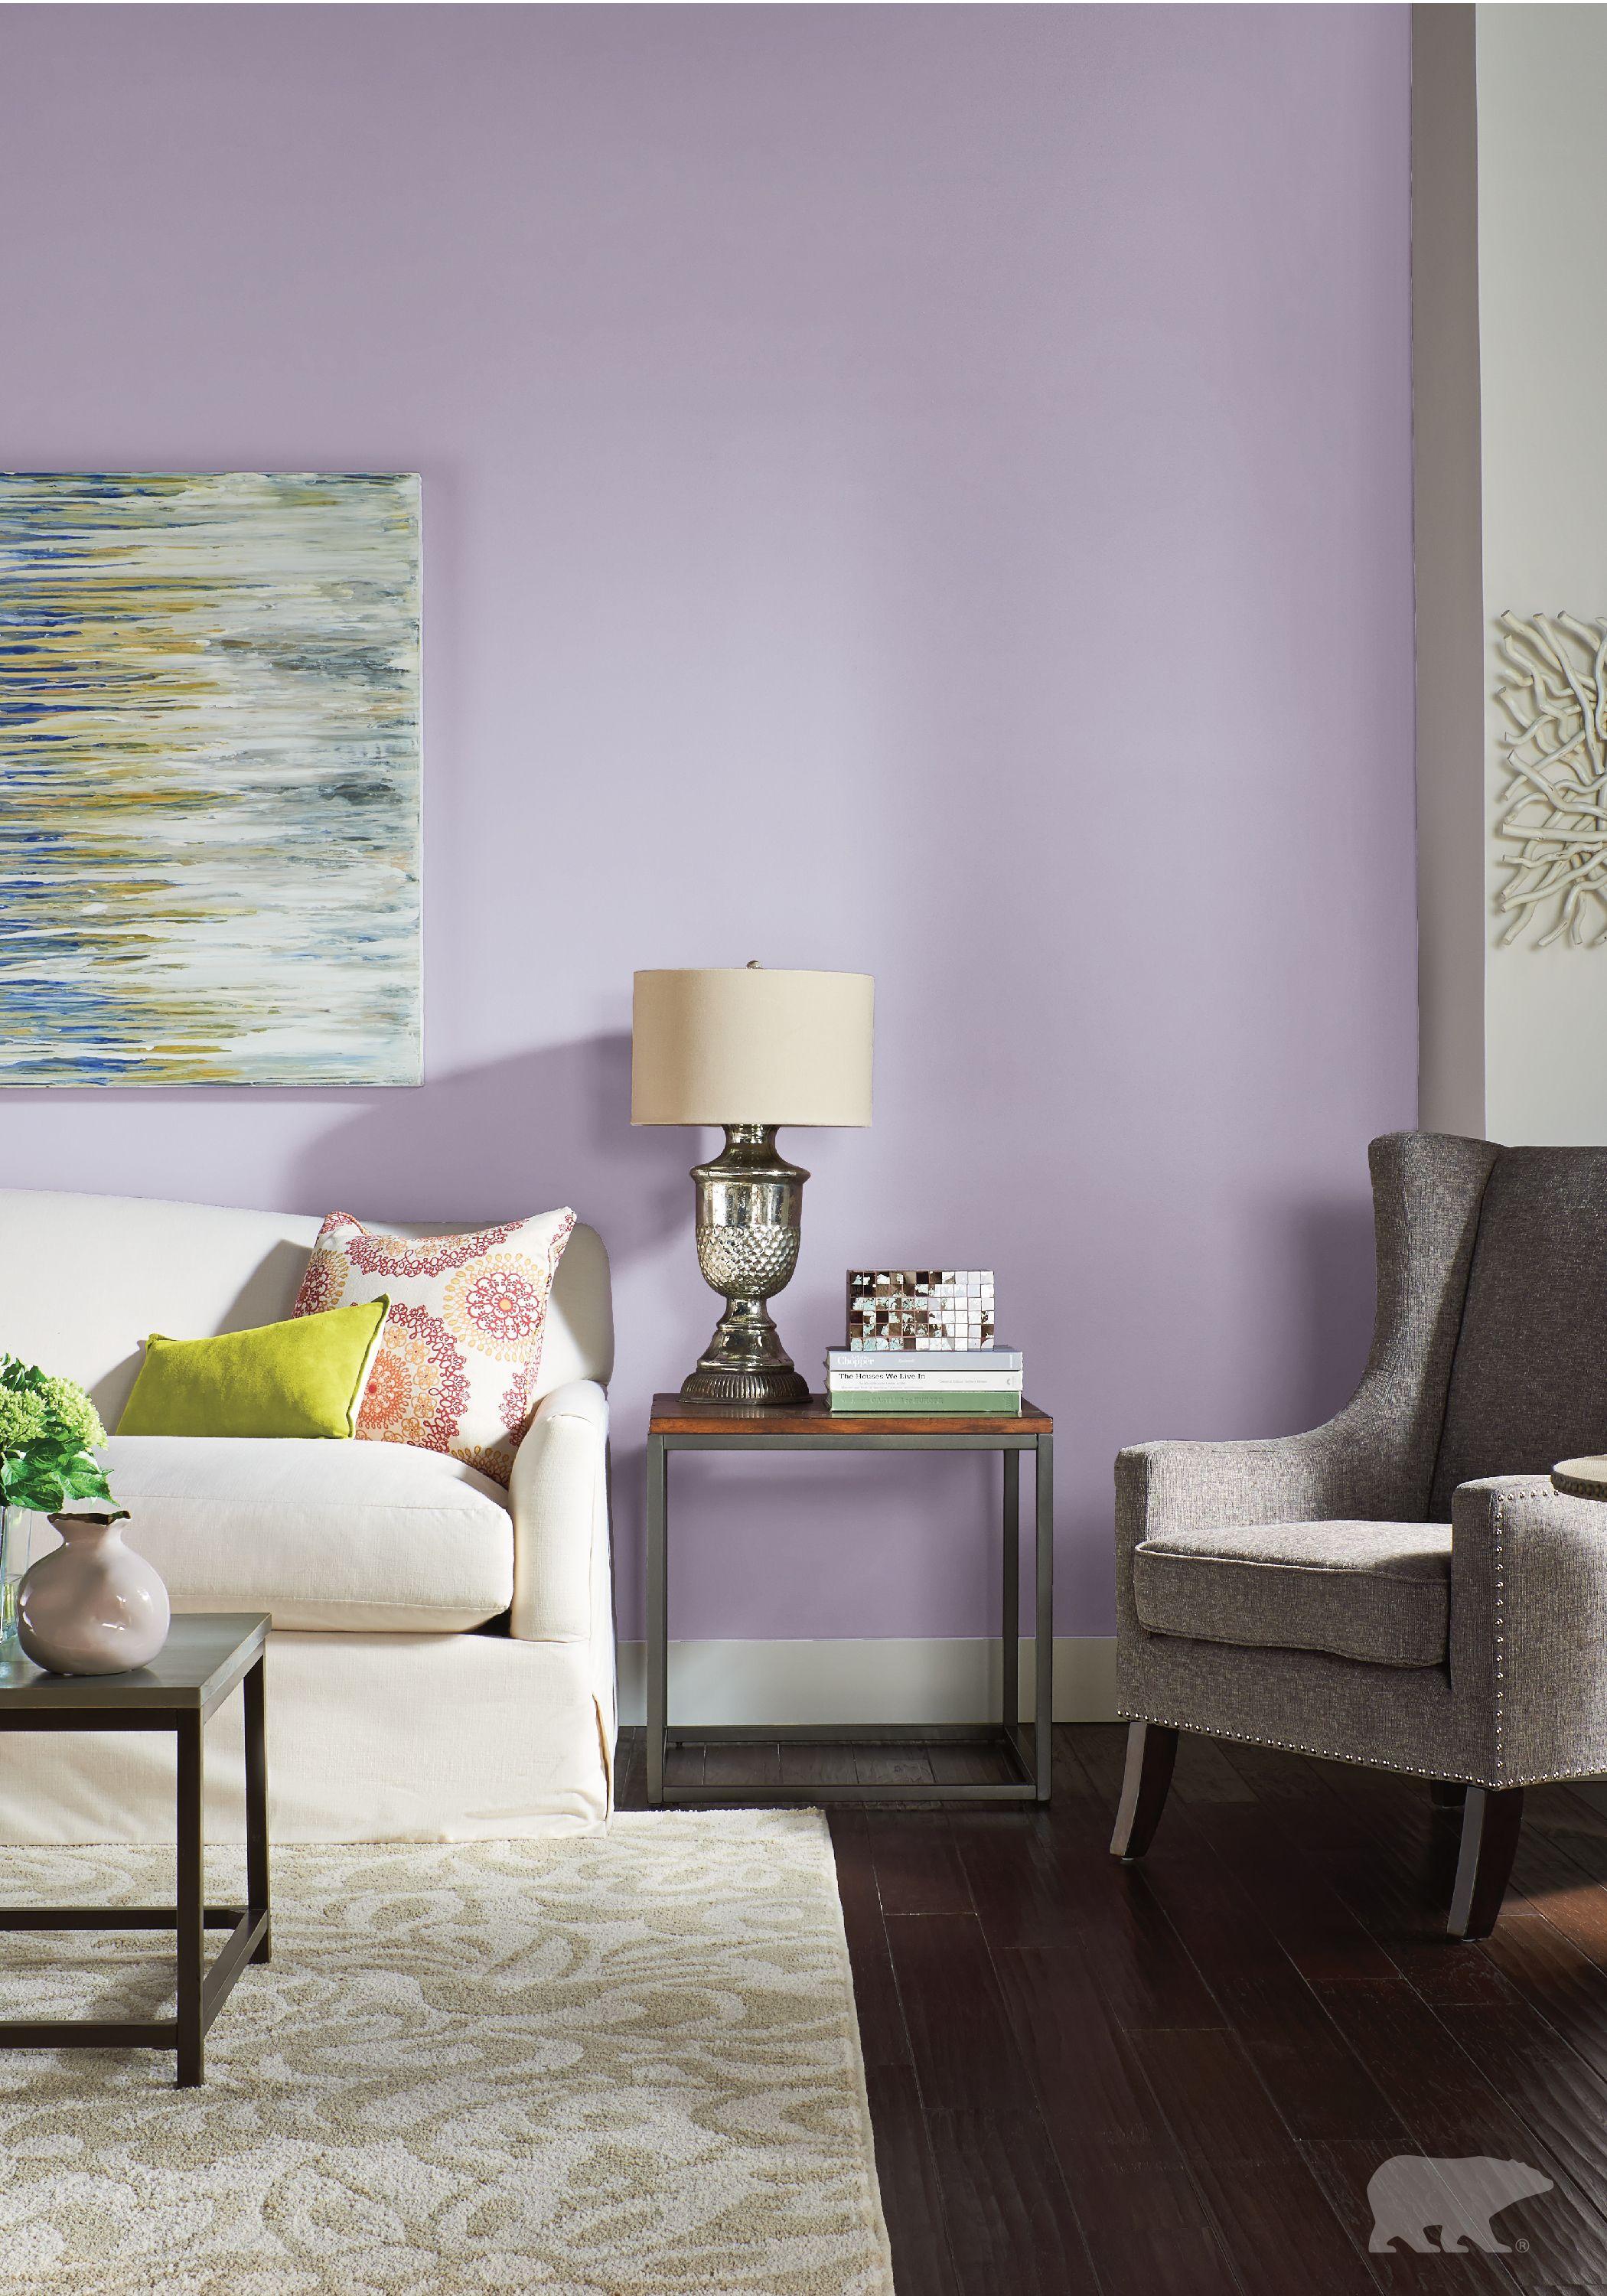 Purple Painted Room Design Inspiration And Project Idea Gallery Behr Lavender Living Rooms Purple Living Room Living Room Colors